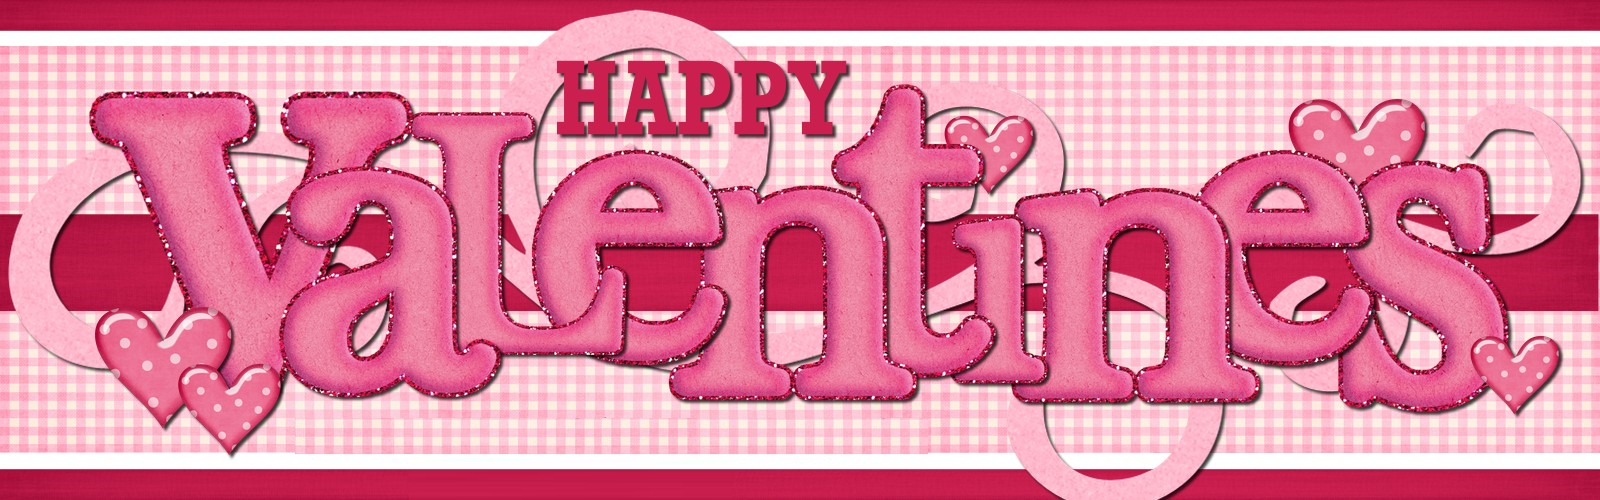 Sites/26/FrontPagePosters/valentines-201406111247112271.png